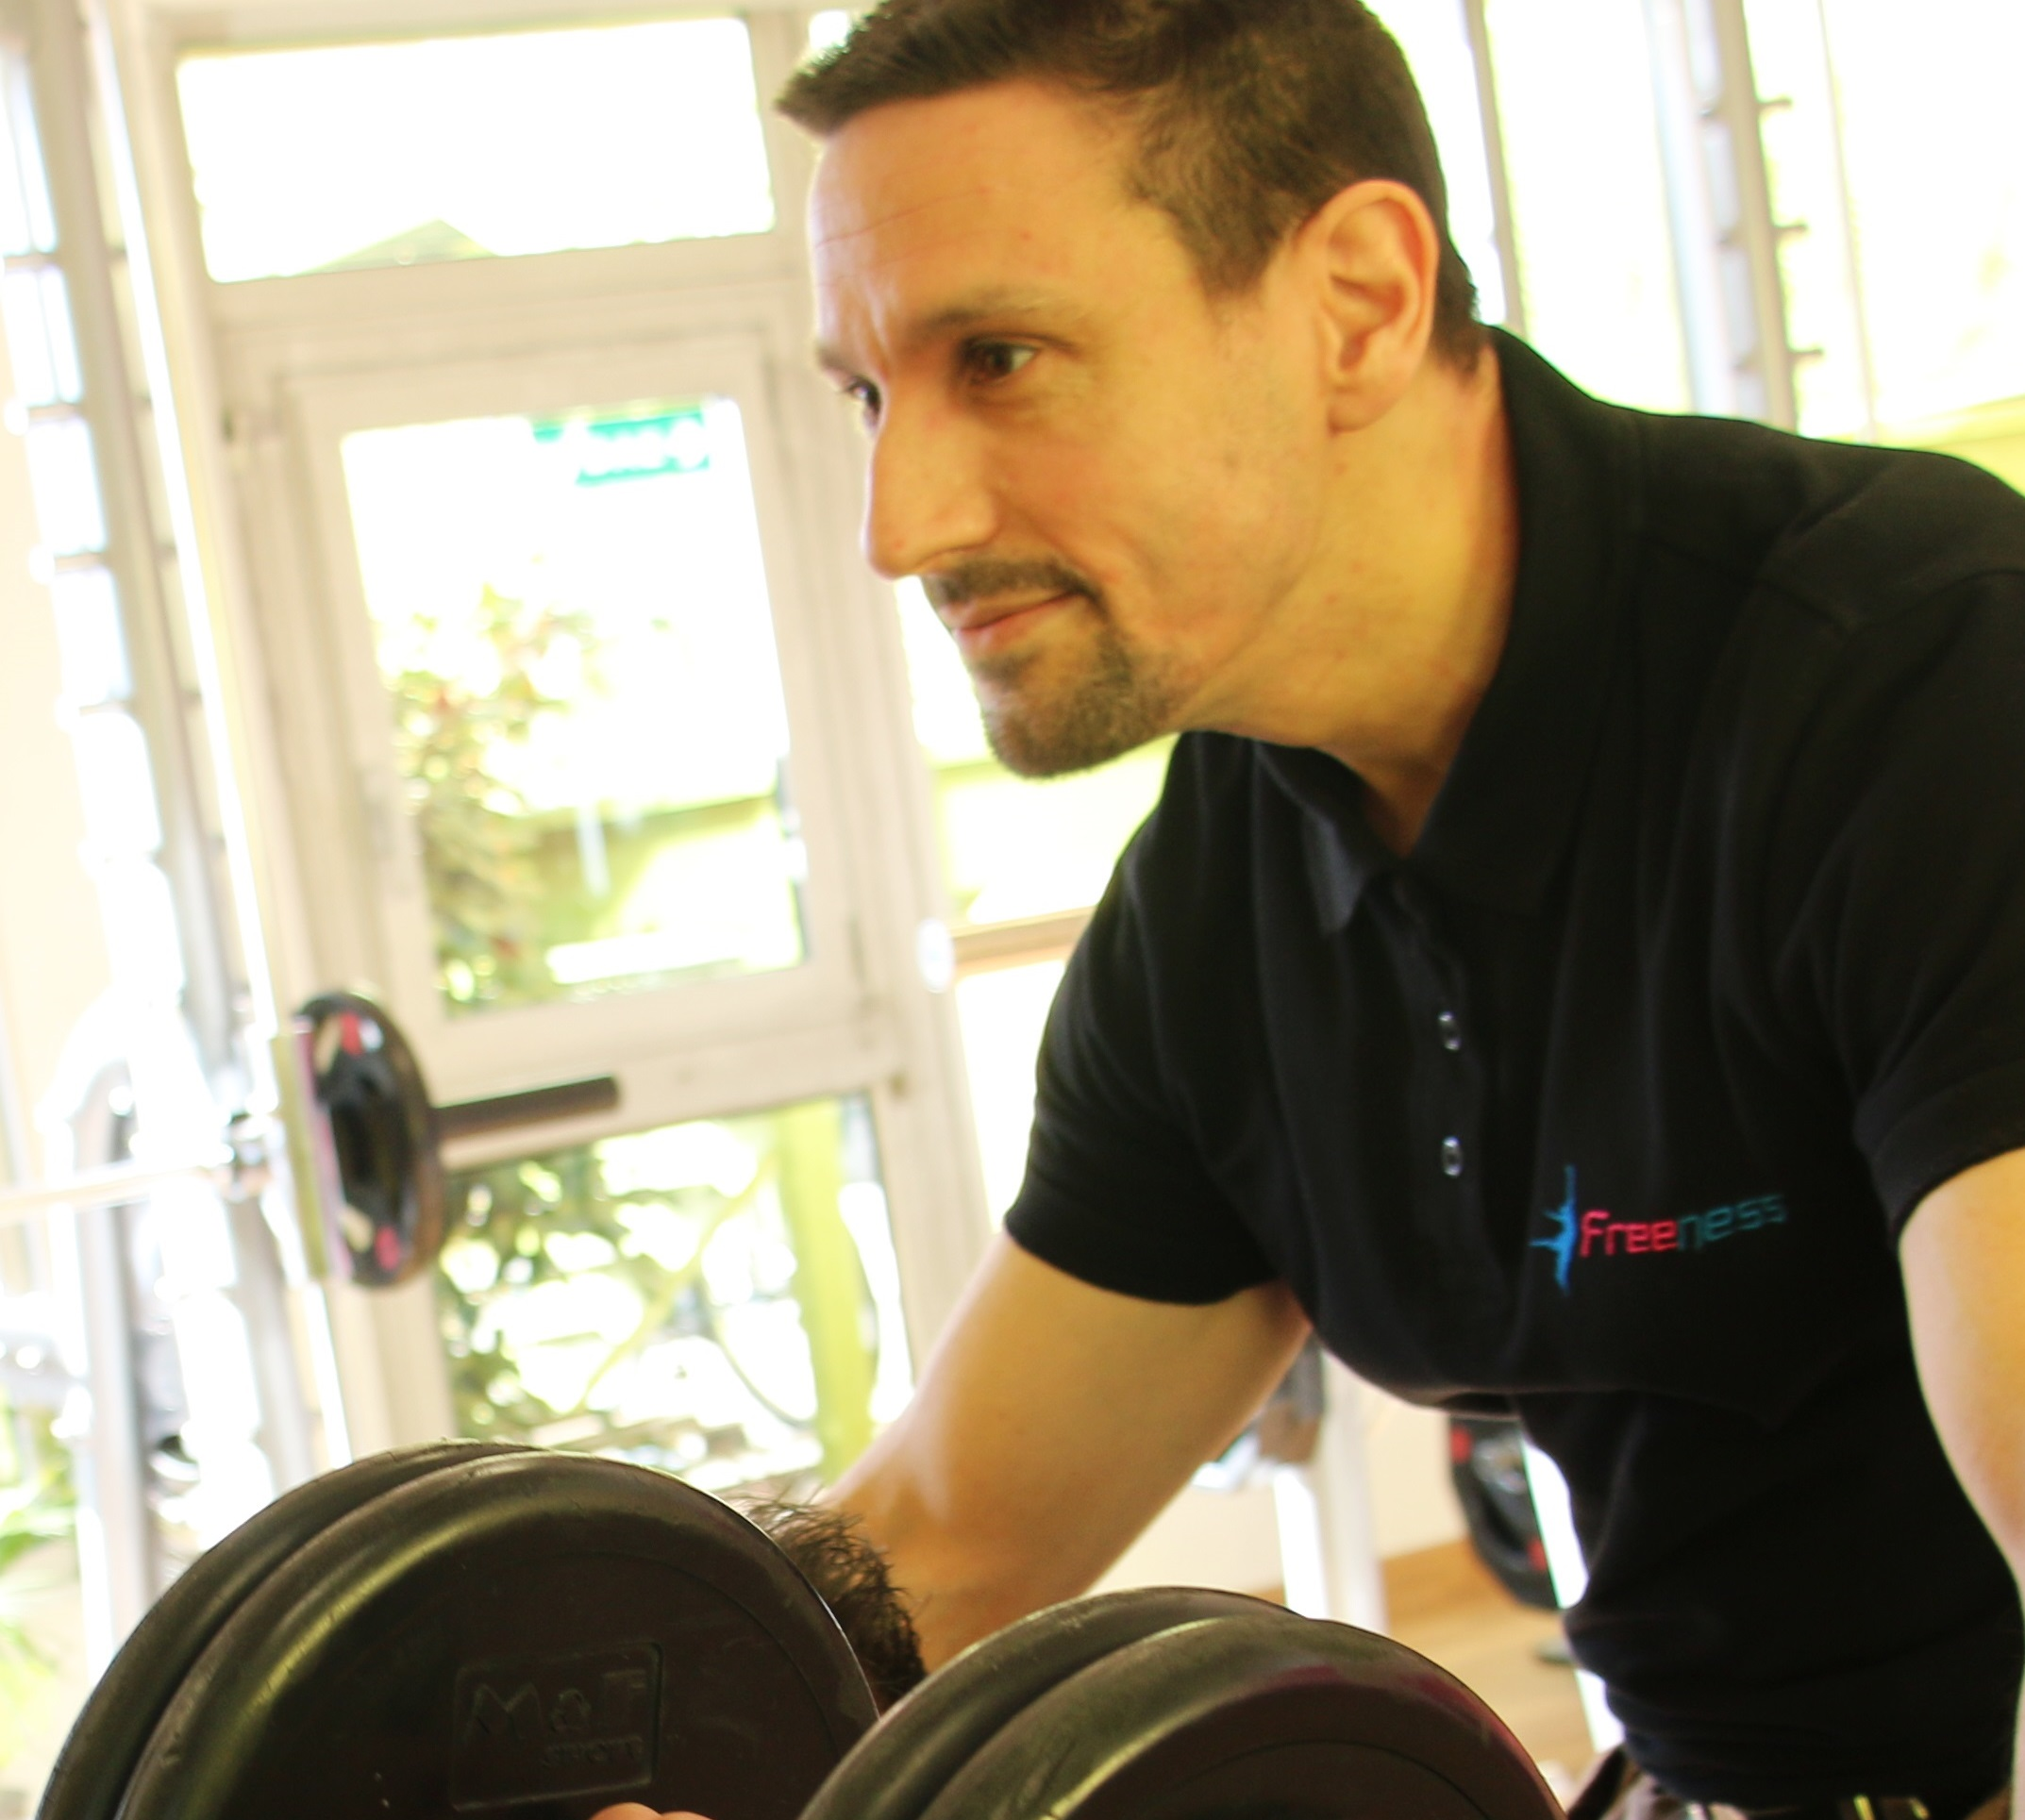 Club Fitness Clermont Ferrand Freeness Le Sport Sante